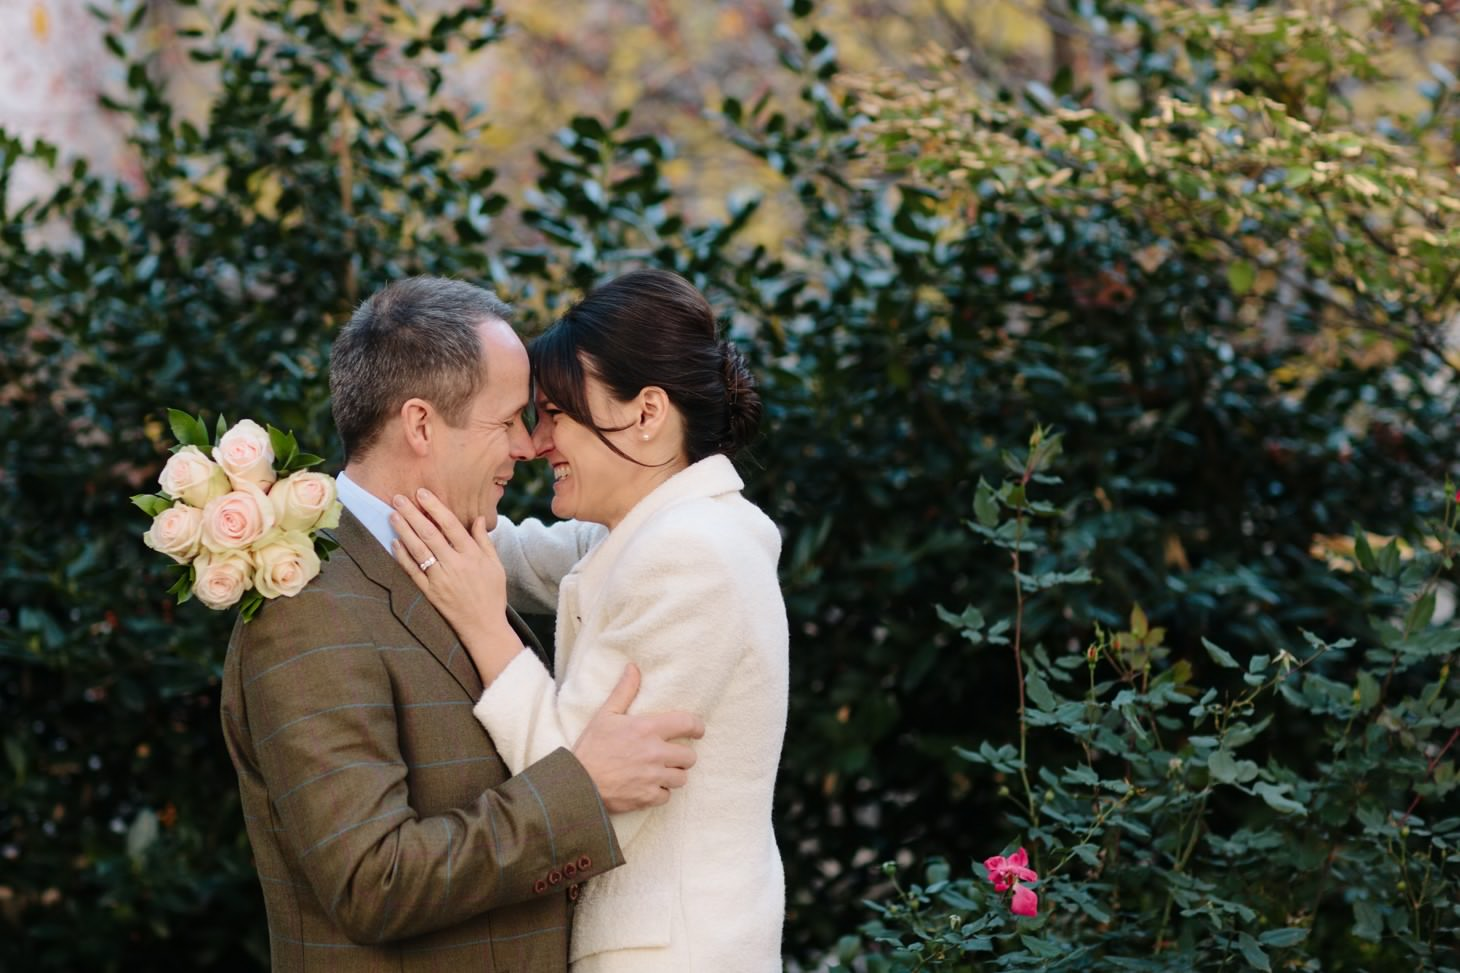 nyc-authentic-emotional-wedding-photography-elopement-smitten-chickens-photo20.jpg